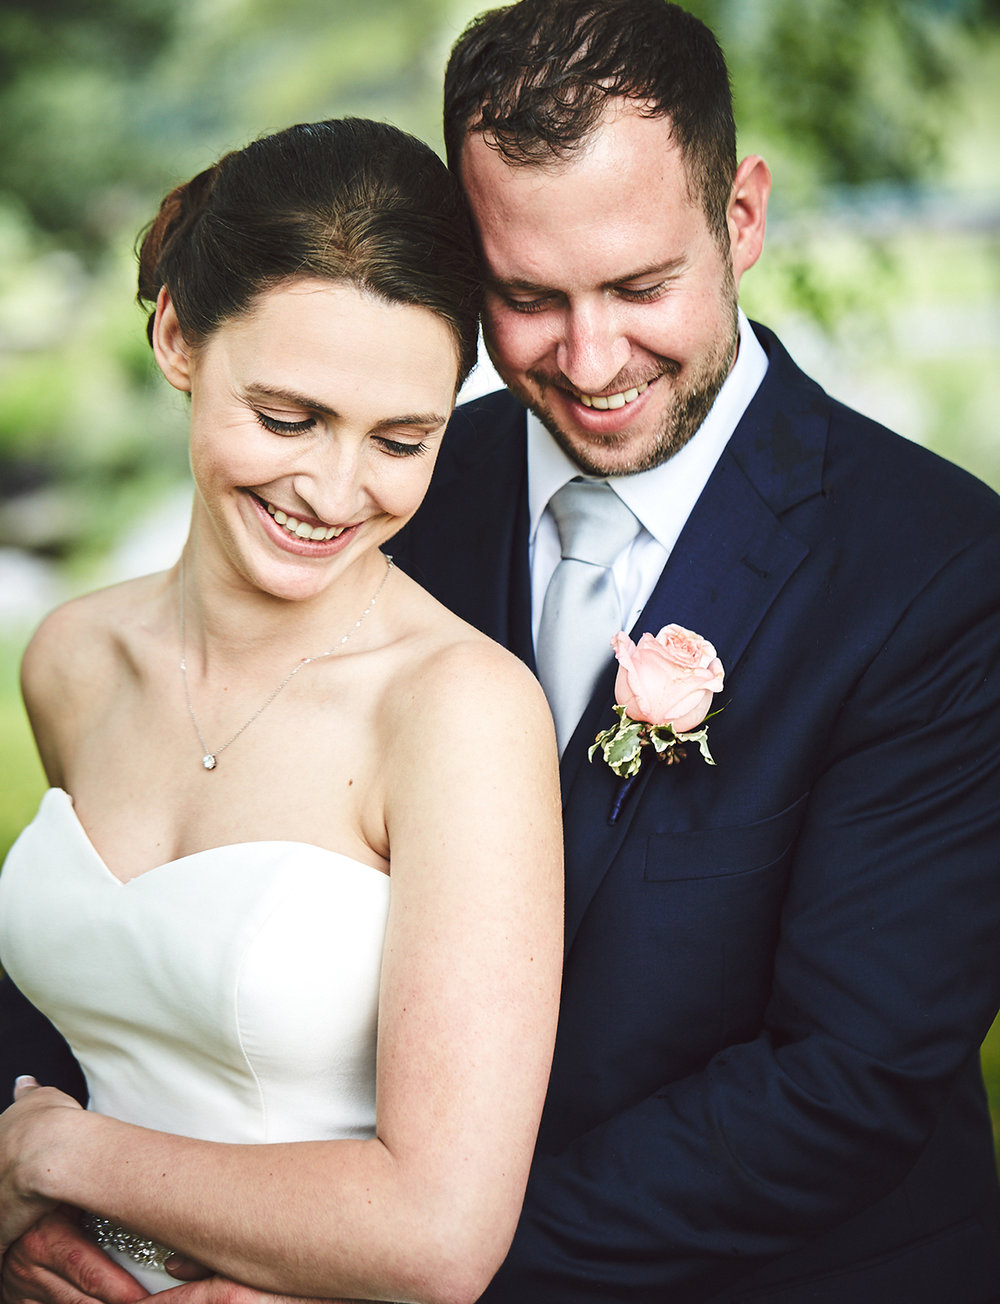 180714_HolidayValleyLodgeWeddingPhotography_By_BriJohnsonWeddings_0102.jpg